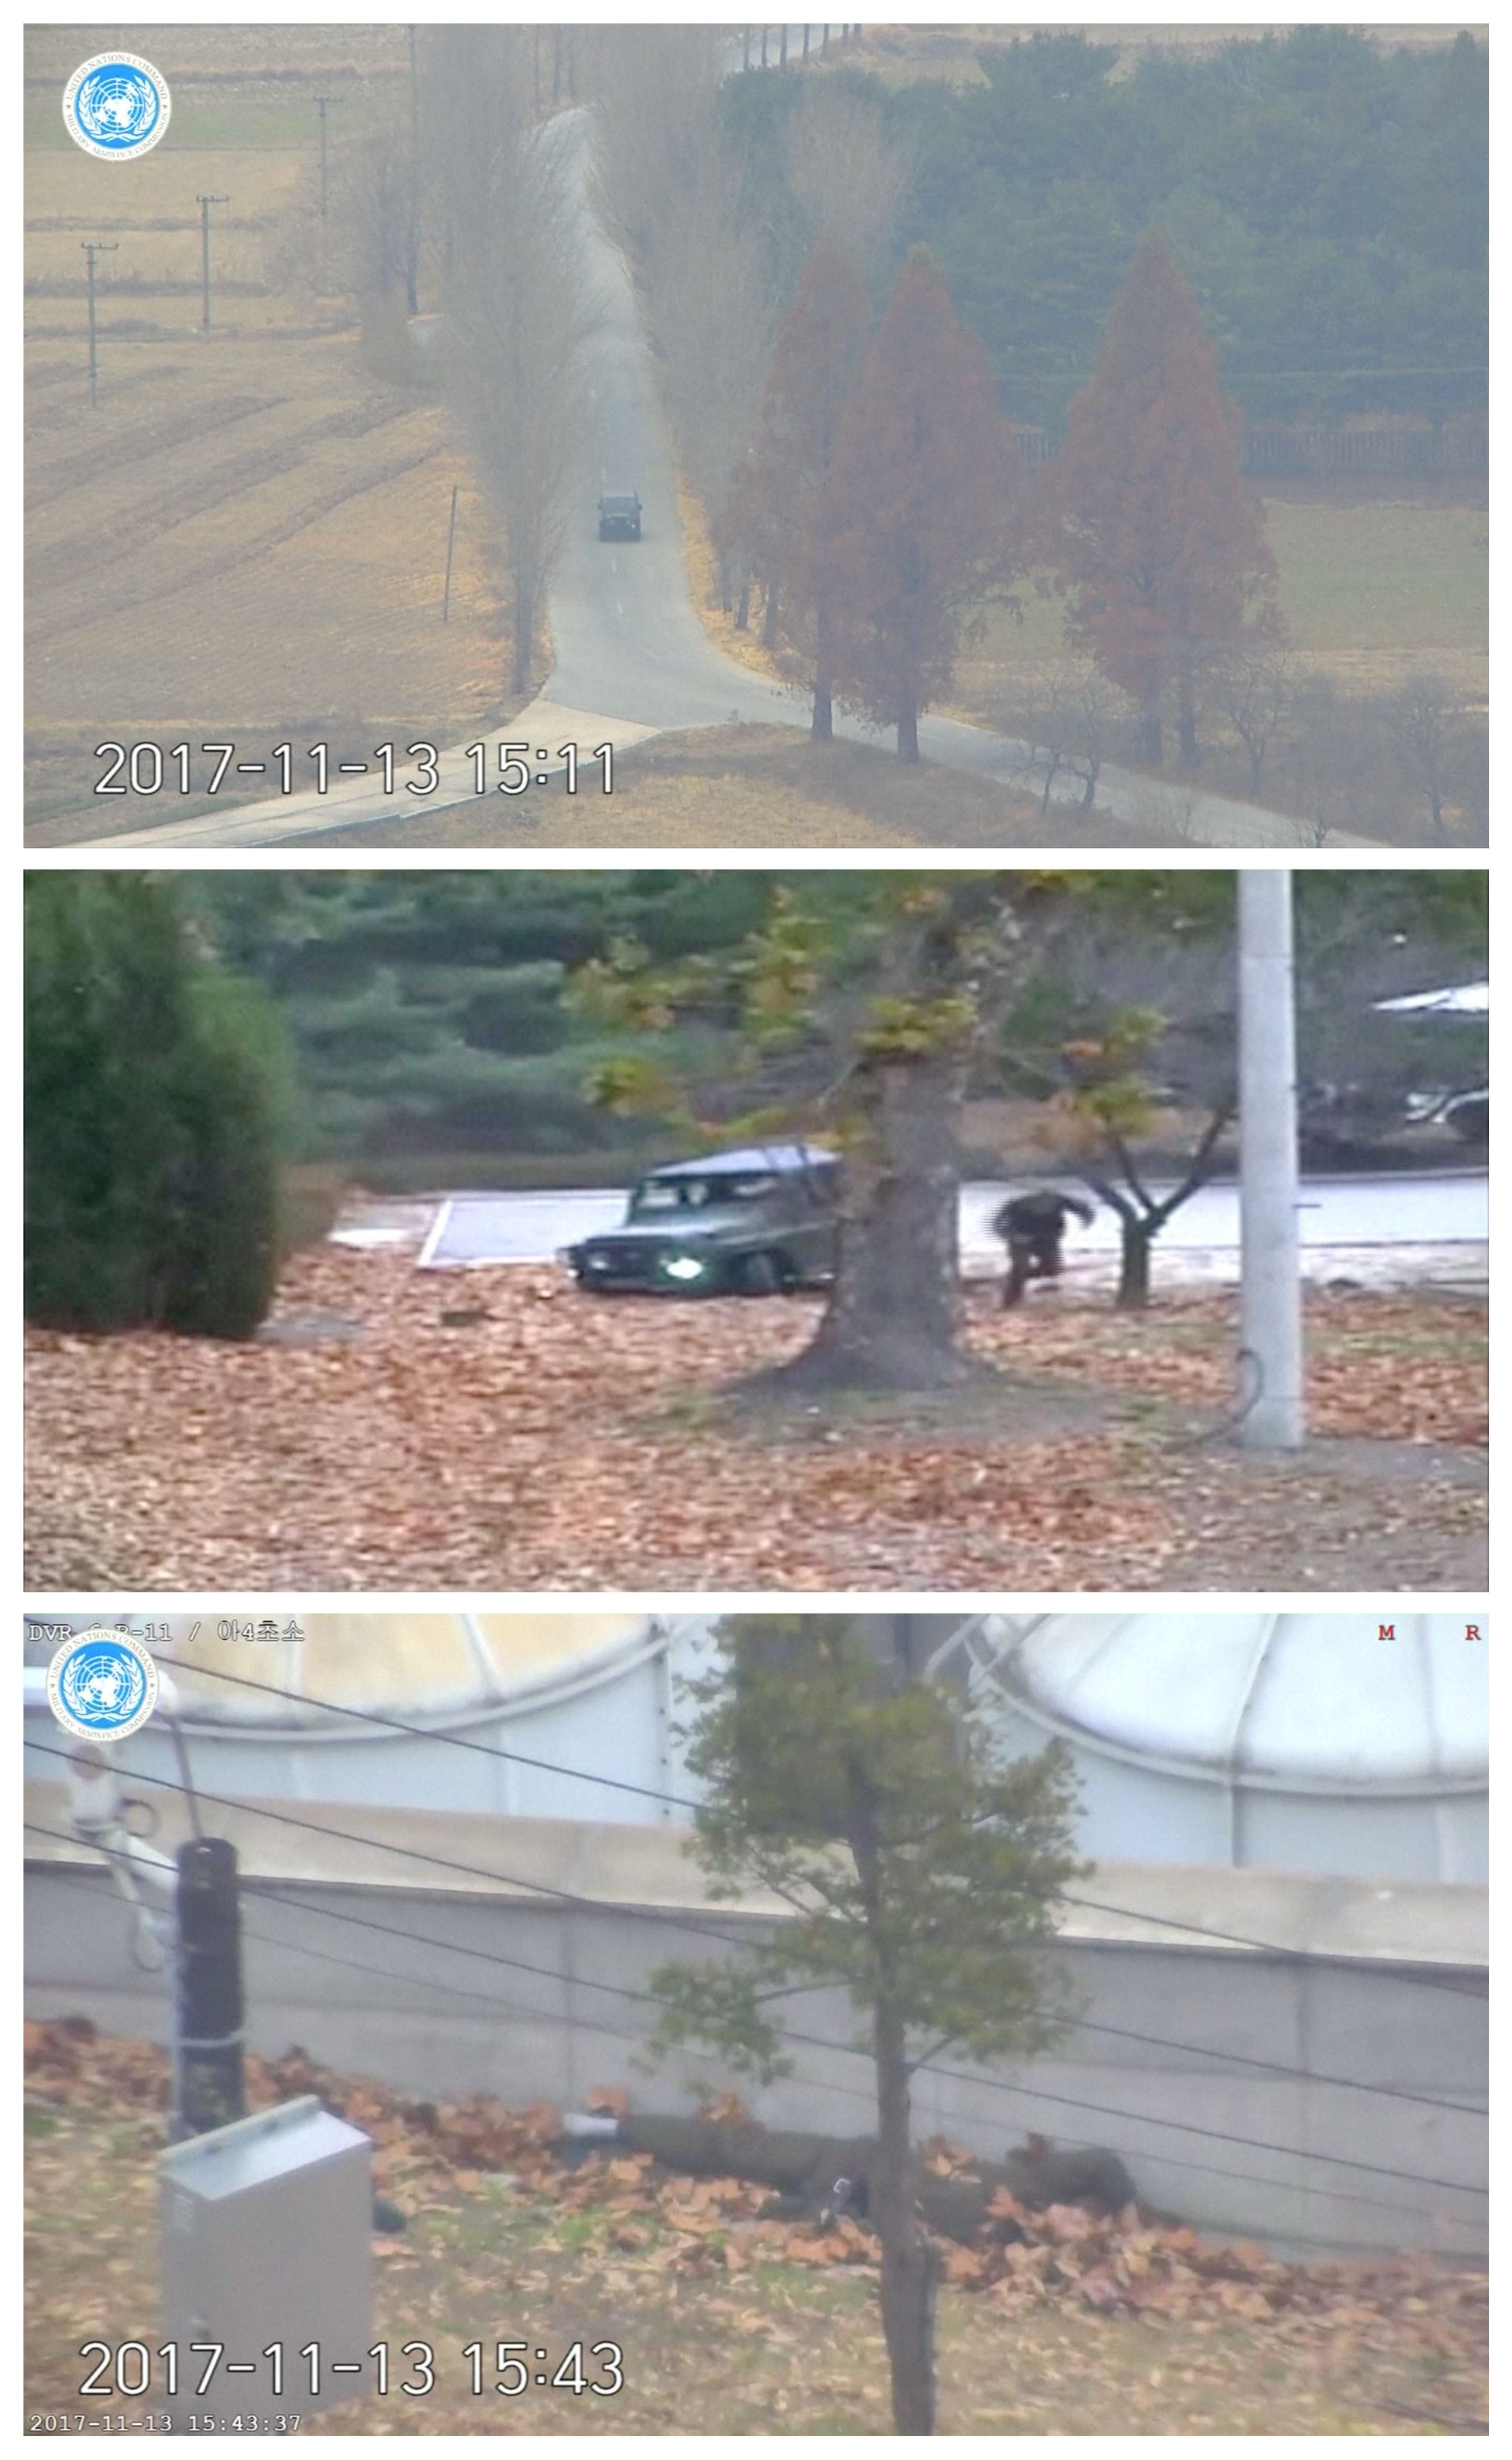 A North Korean soldier can be seen defecting into South Korea in this image taken from a video released...